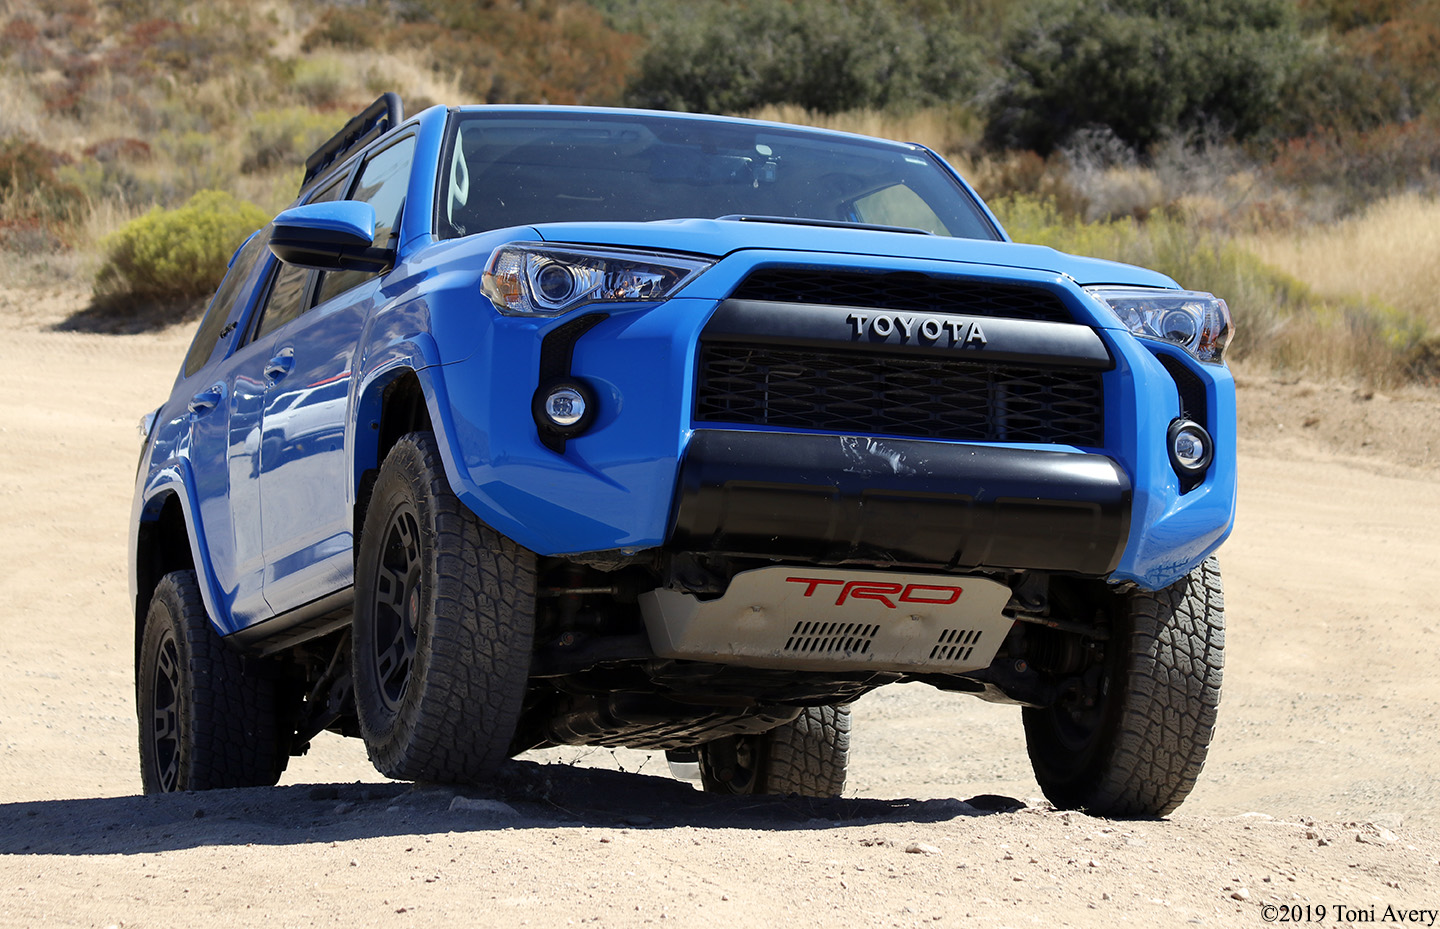 2019 Toyota 4runner Trd Pro Review W Video Girlsdrivefasttoo